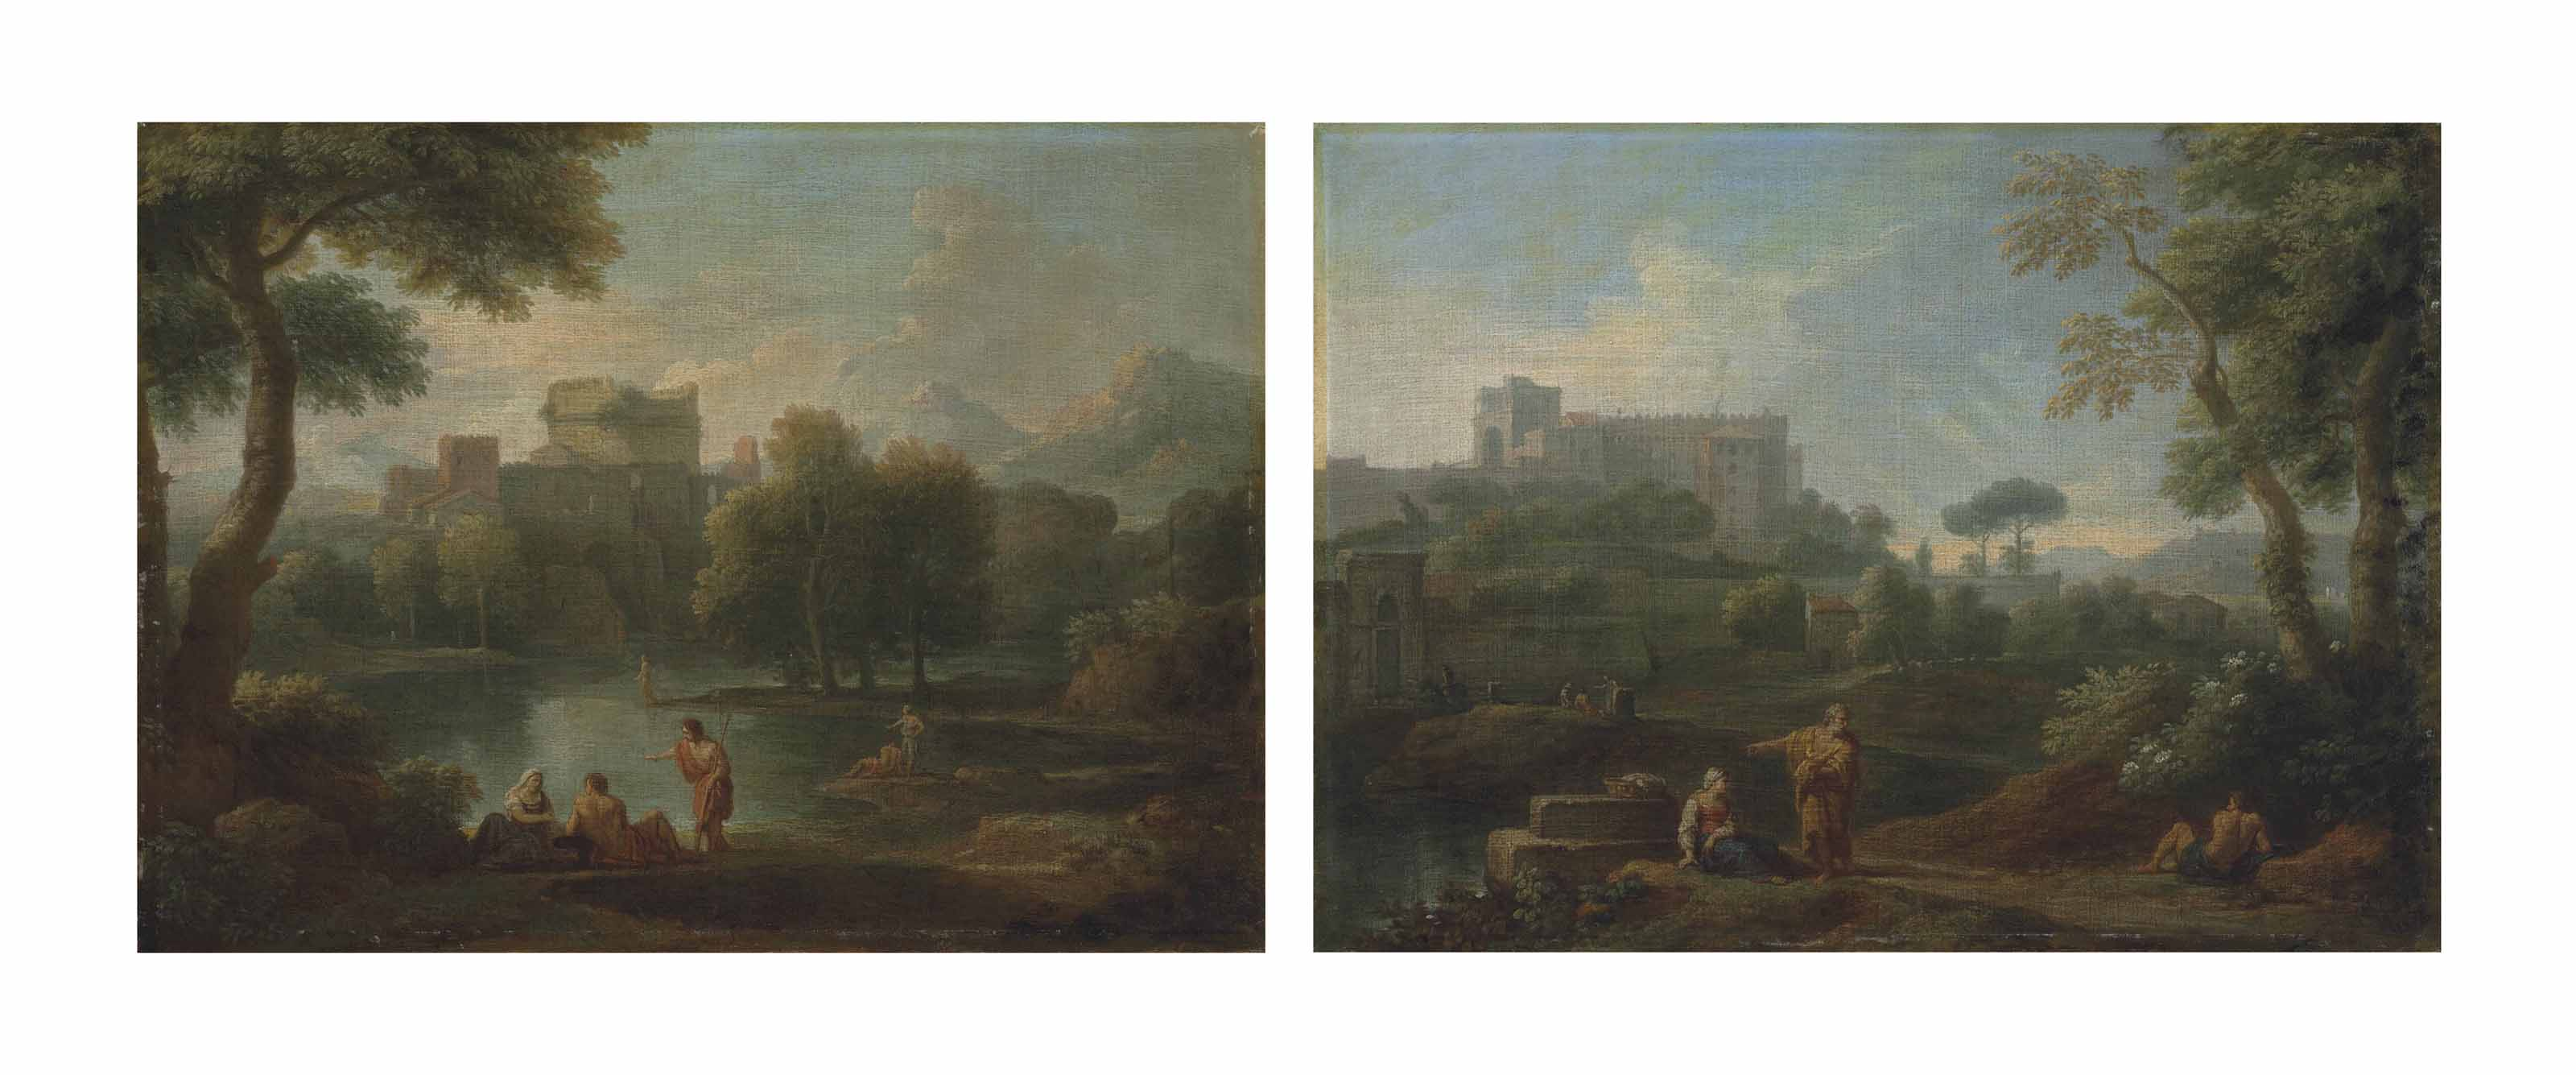 A classical landscape with the Tomb of Cecilia Metella, figures conversing on the bank of a river, mountains beyond; and A classical landscape with a capriccio of the Vatican Belvedere, figures conversing in the foreground